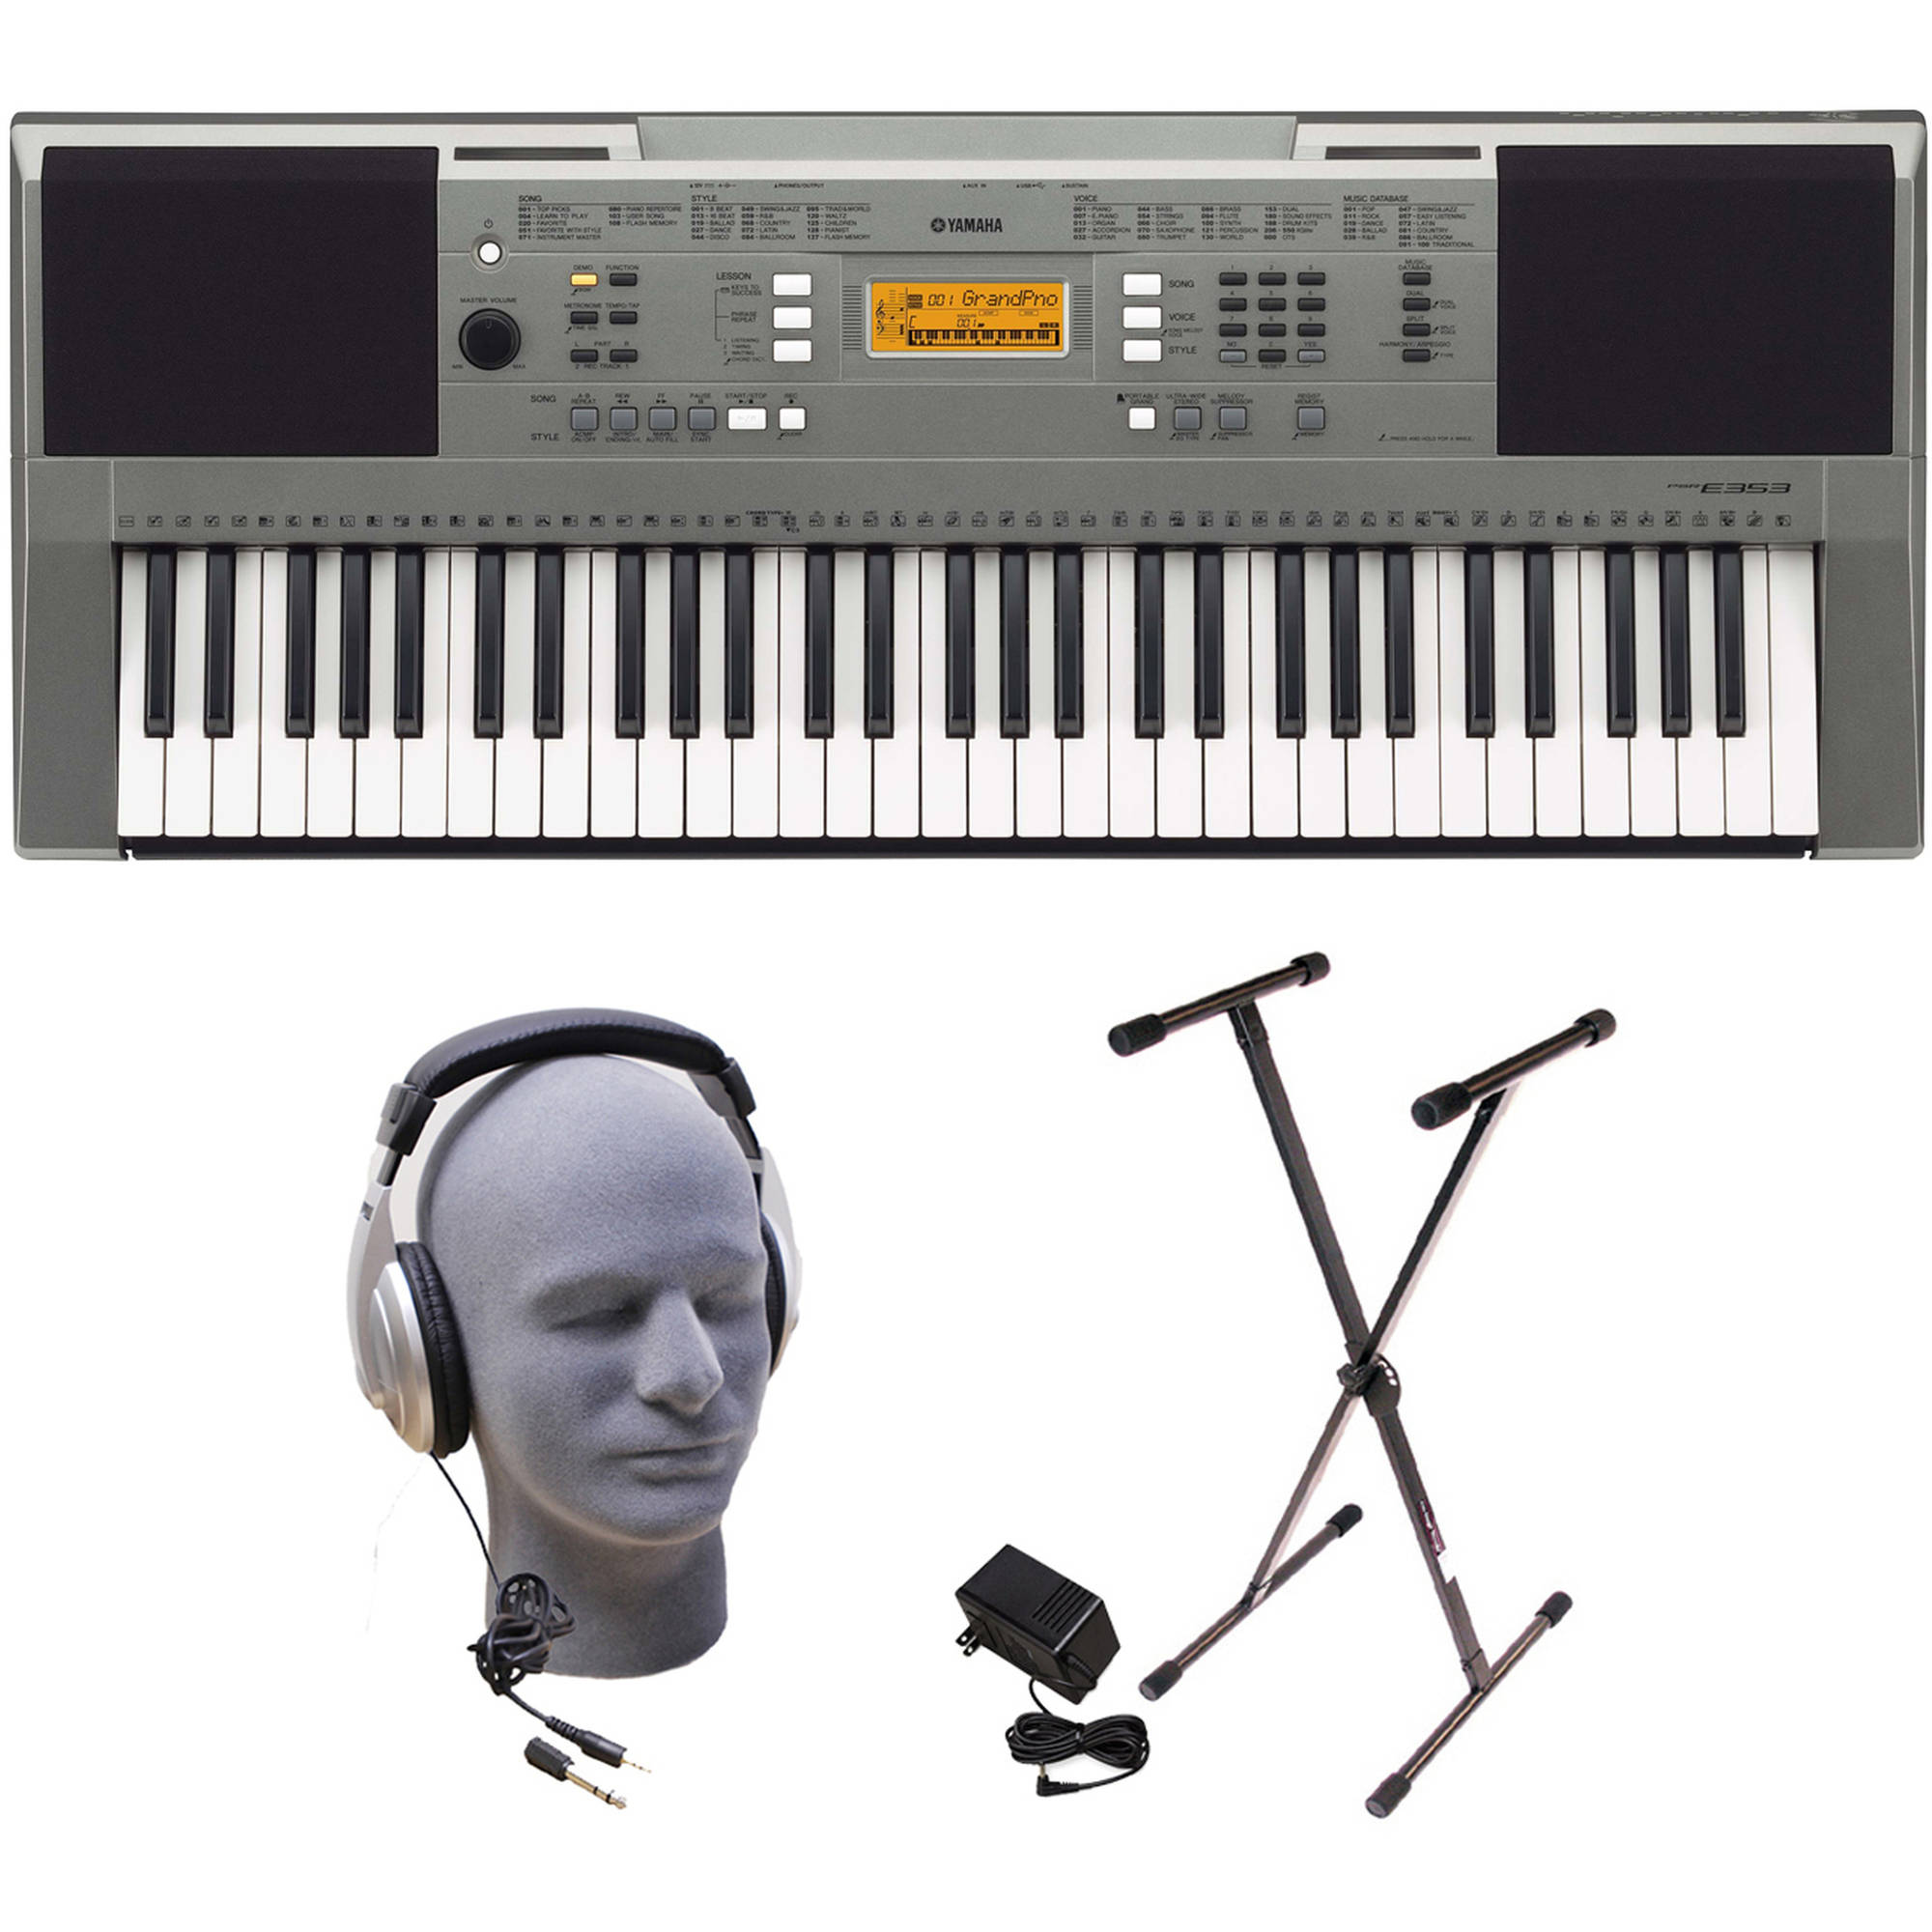 Yamaha PSRE353 Portable Keyboard Package with Headphones, Power Supply and Stand by Yamaha